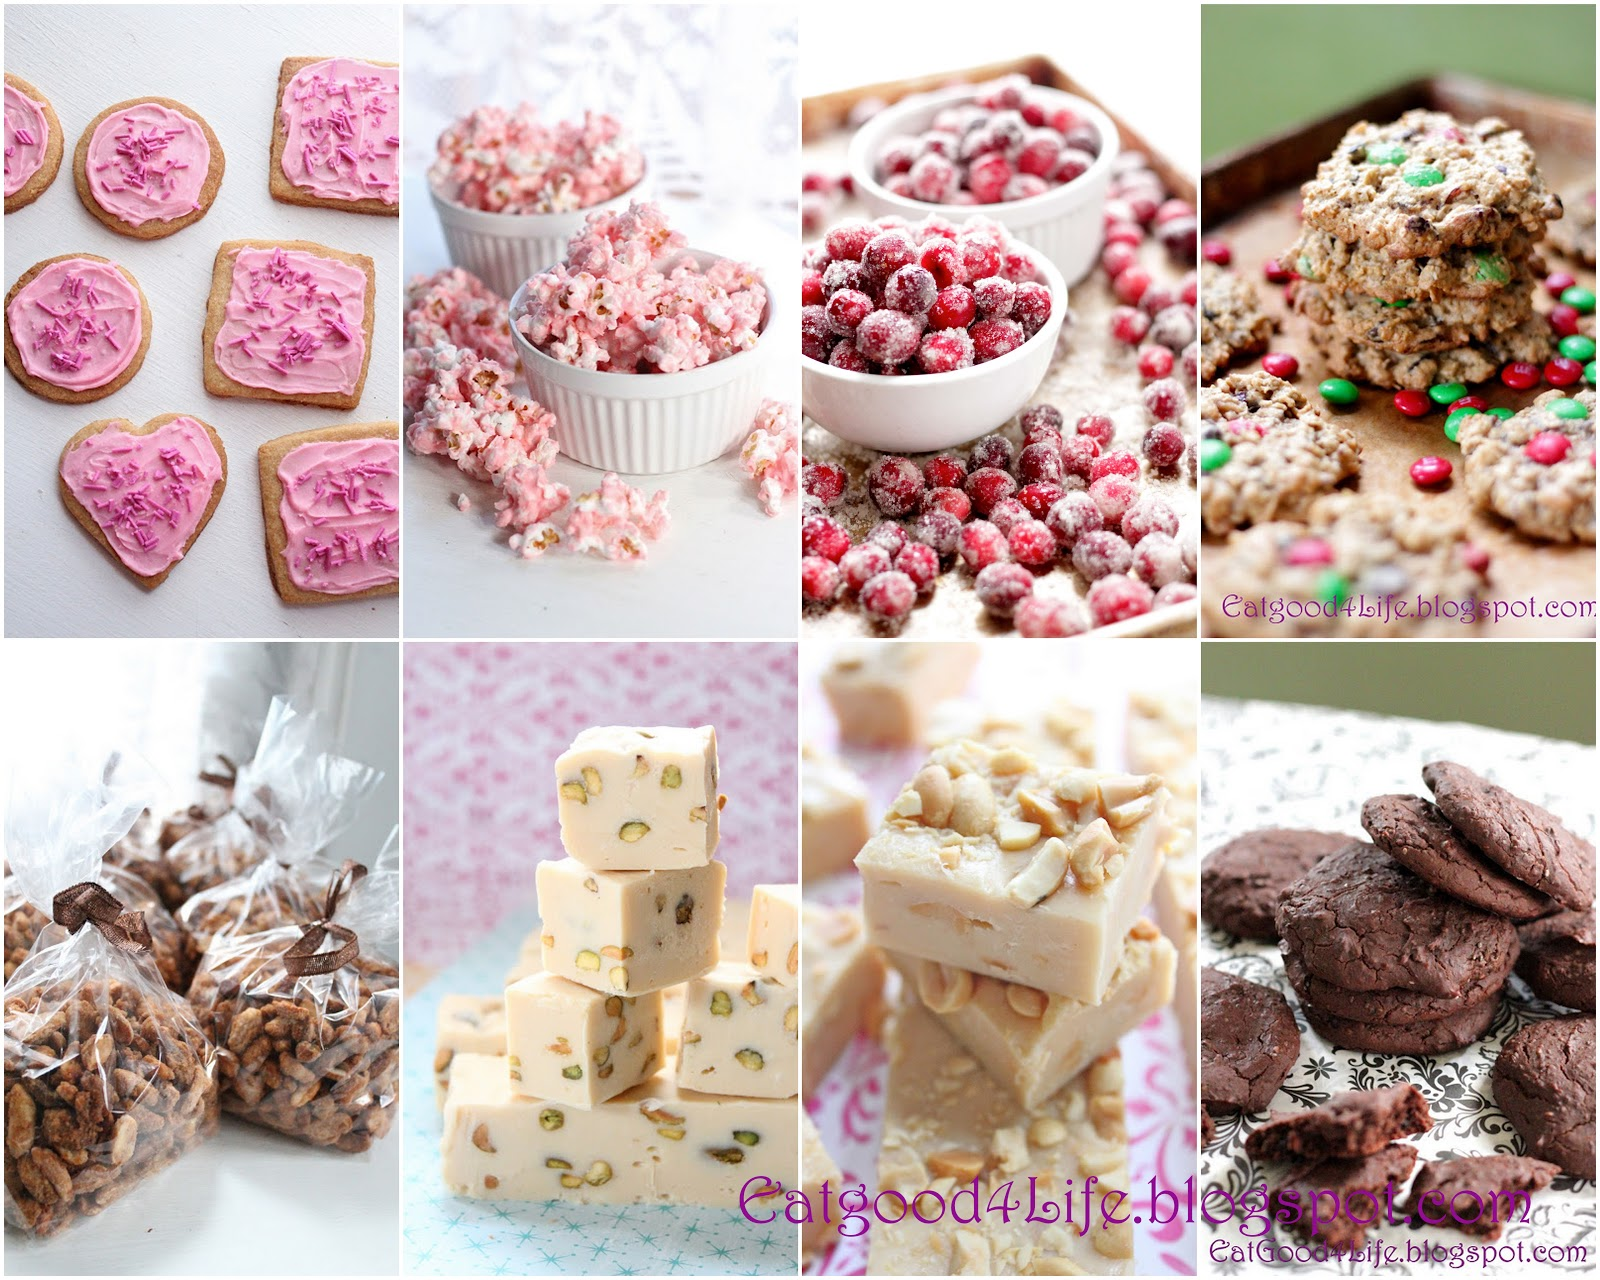 My Top 16 Christmas gift baking ideas | Eat Good 4 Life